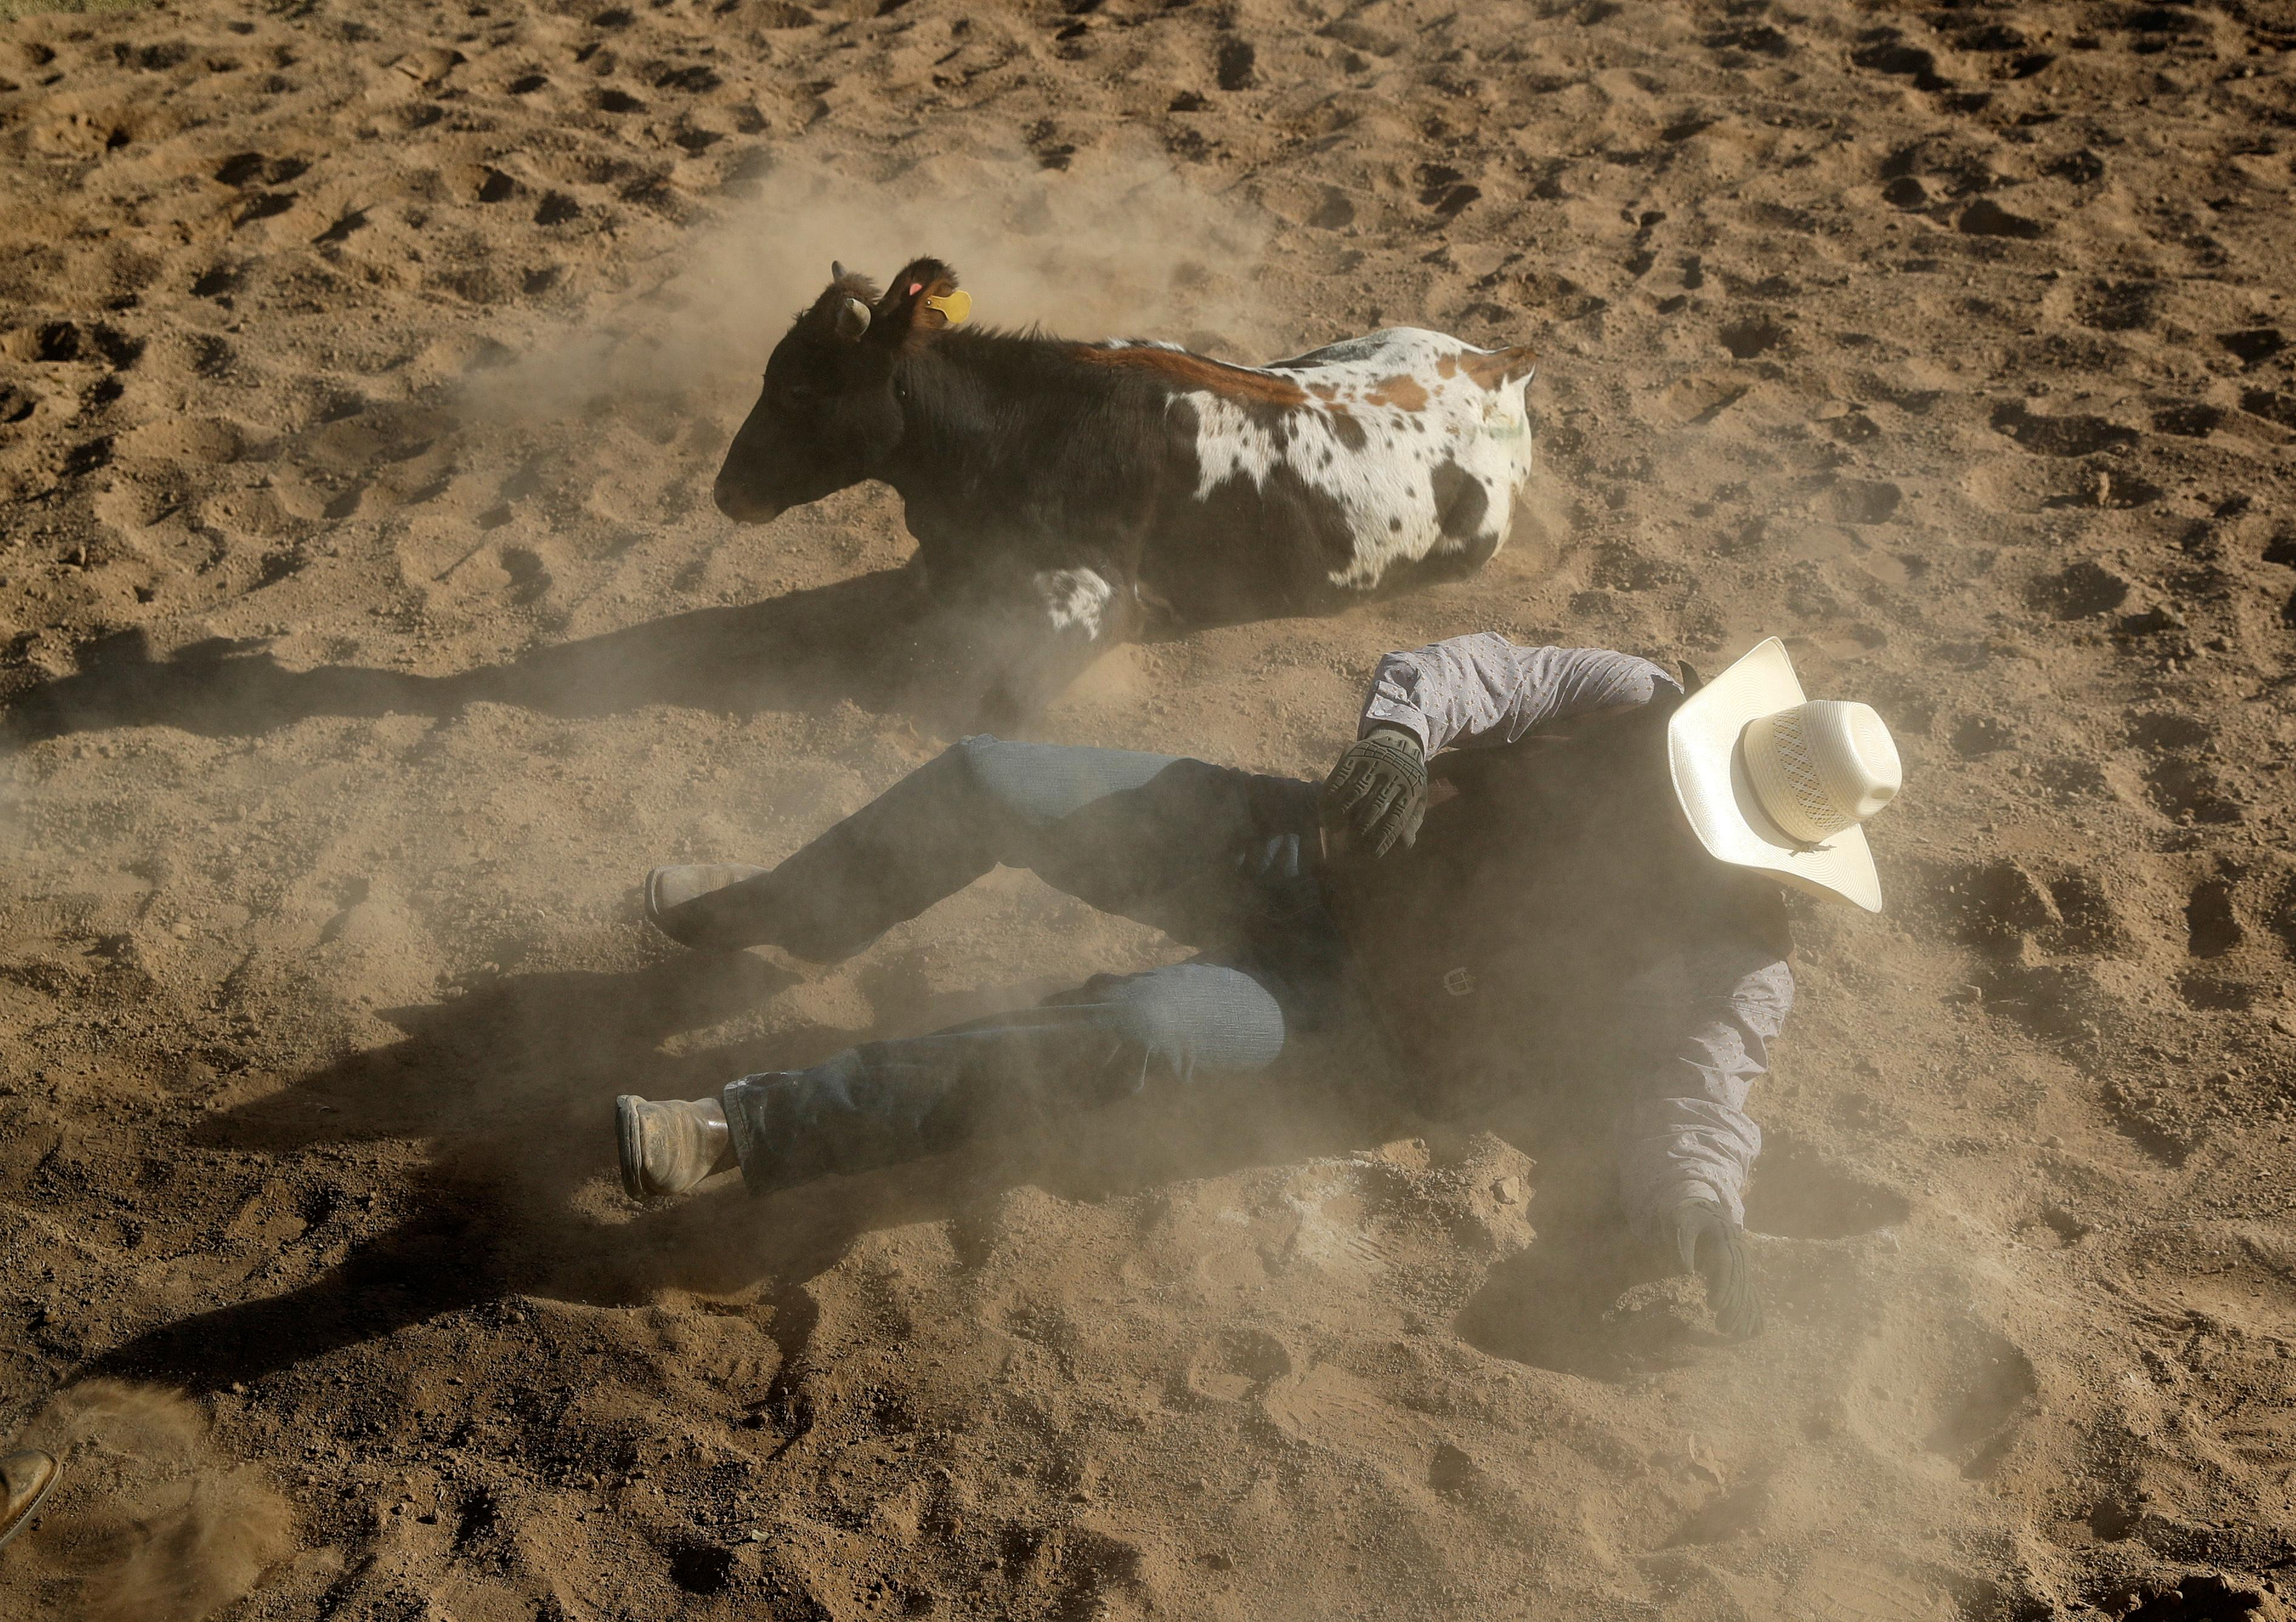 In this Sept. 24, 2017, photo, Chuck Browning gets up out of the dirt after competing in the chute dogging event at the Bighorn Rodeo in Las Vegas. (AP Photo/John Locher)